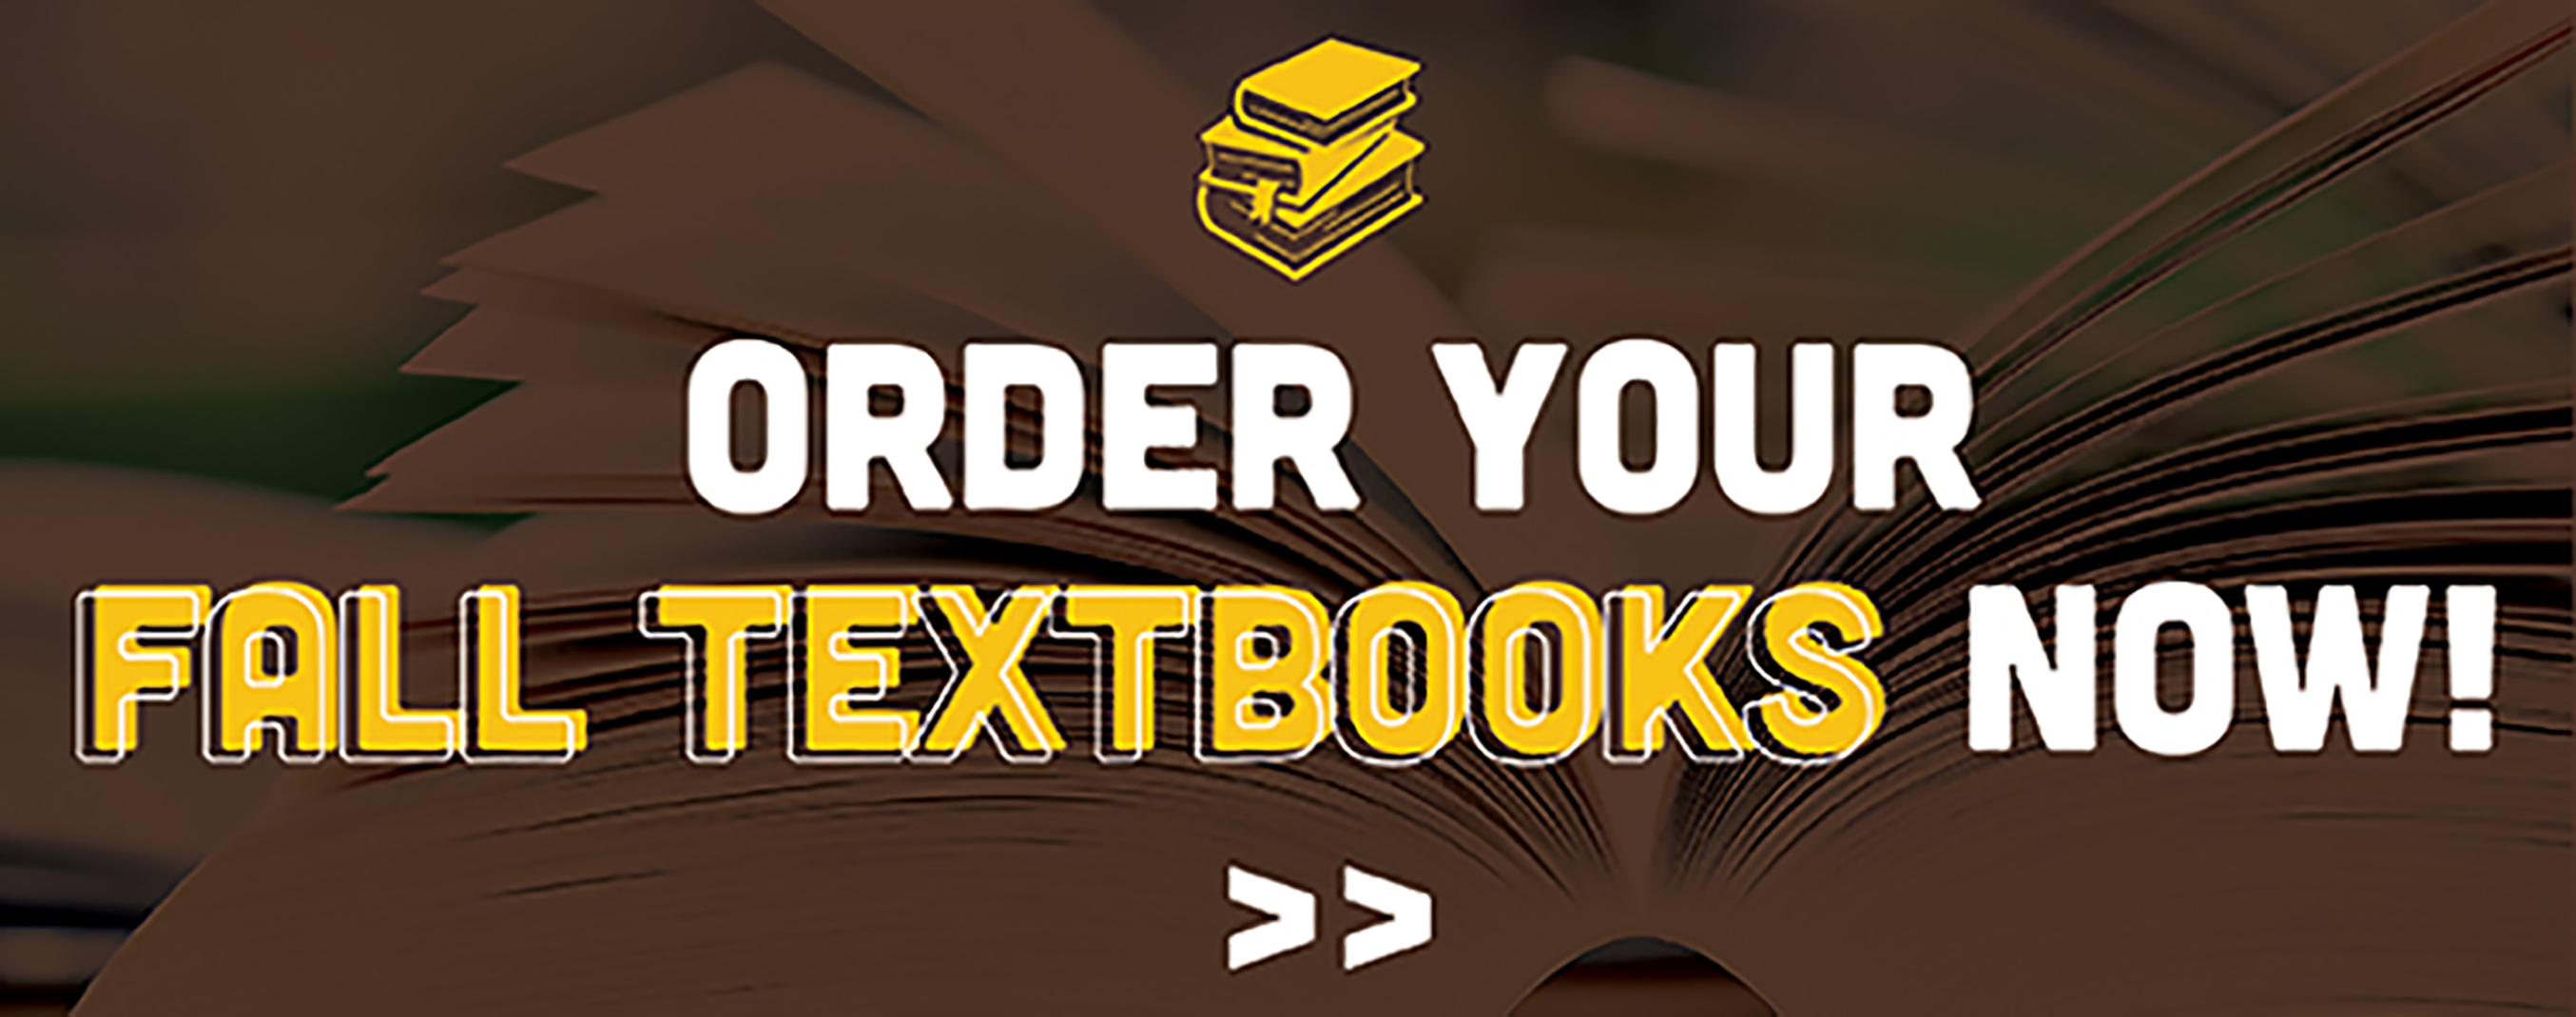 Order Your Fall Textbooks Now!